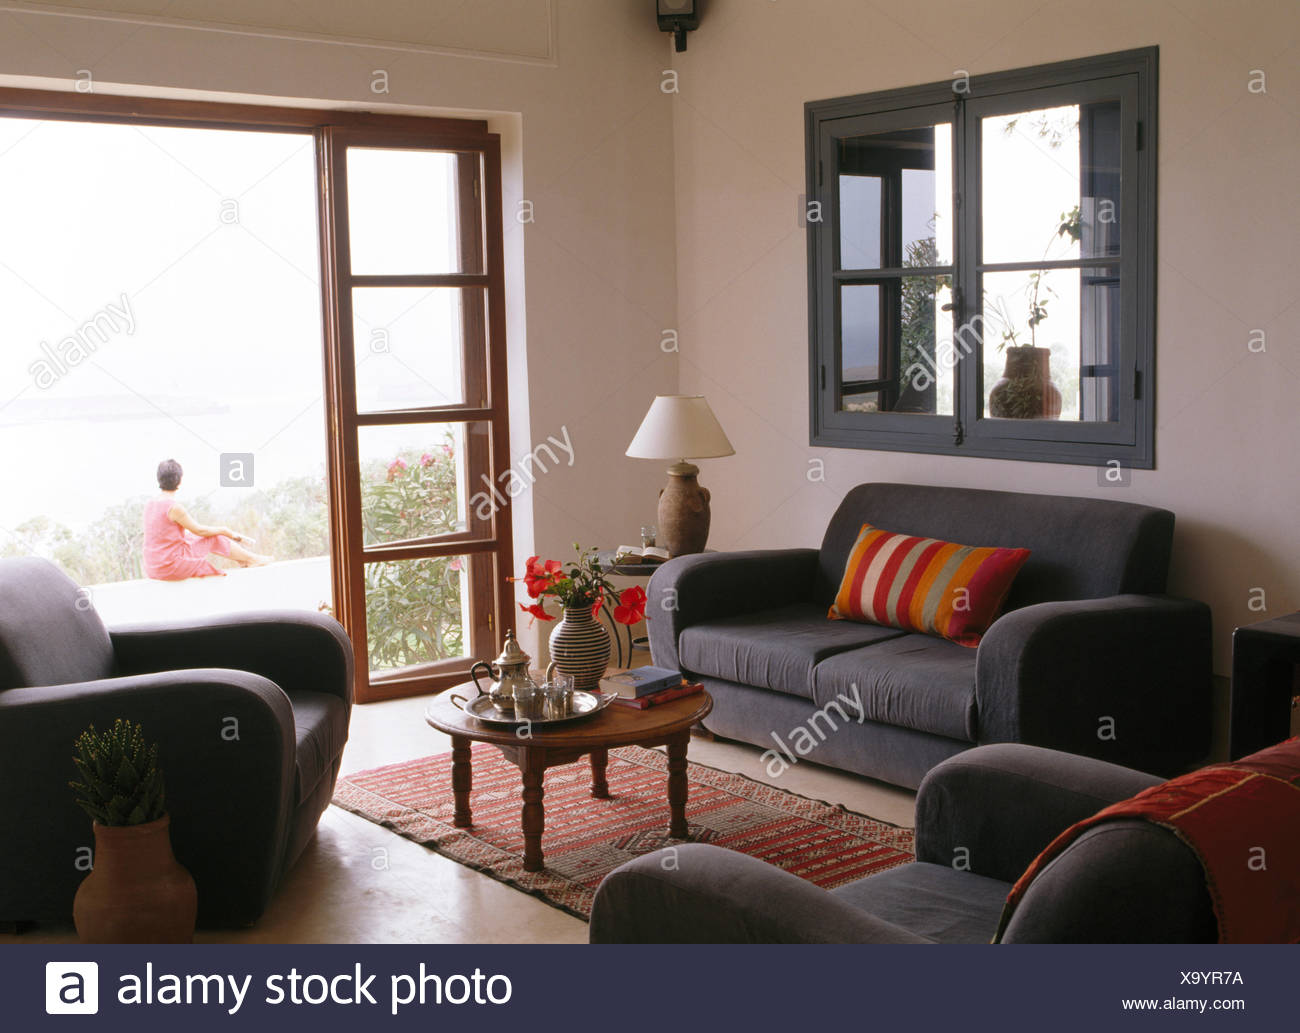 Grey Sofa Below Internal Window In Moroccan Sitting Room With View Through Glass Doors Of Woman Sitting On Patio Stock Photo Alamy